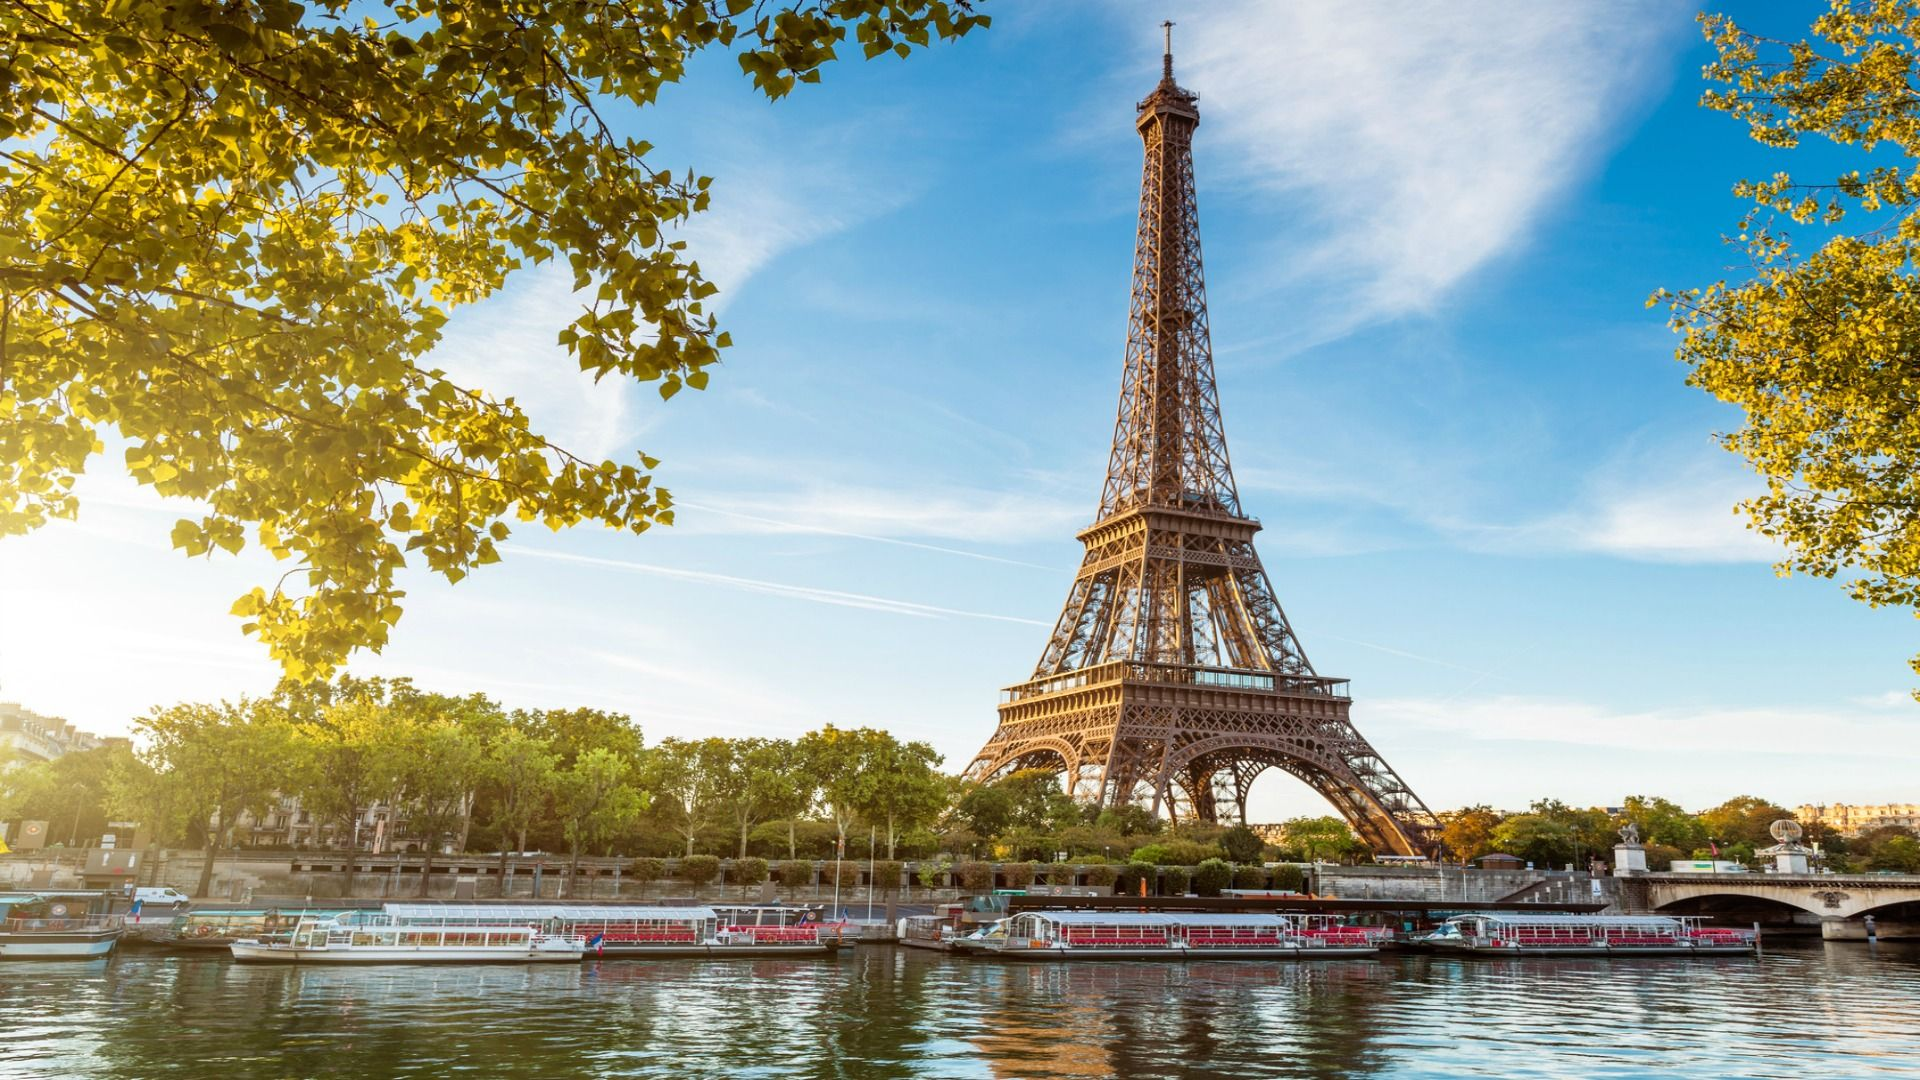 Located only one block from the Eiffel Tower and the lush gardens and playgrounds of Champ de Mars park our 2 bedroom apartment Côtes du Rhône is on the Left Bank.